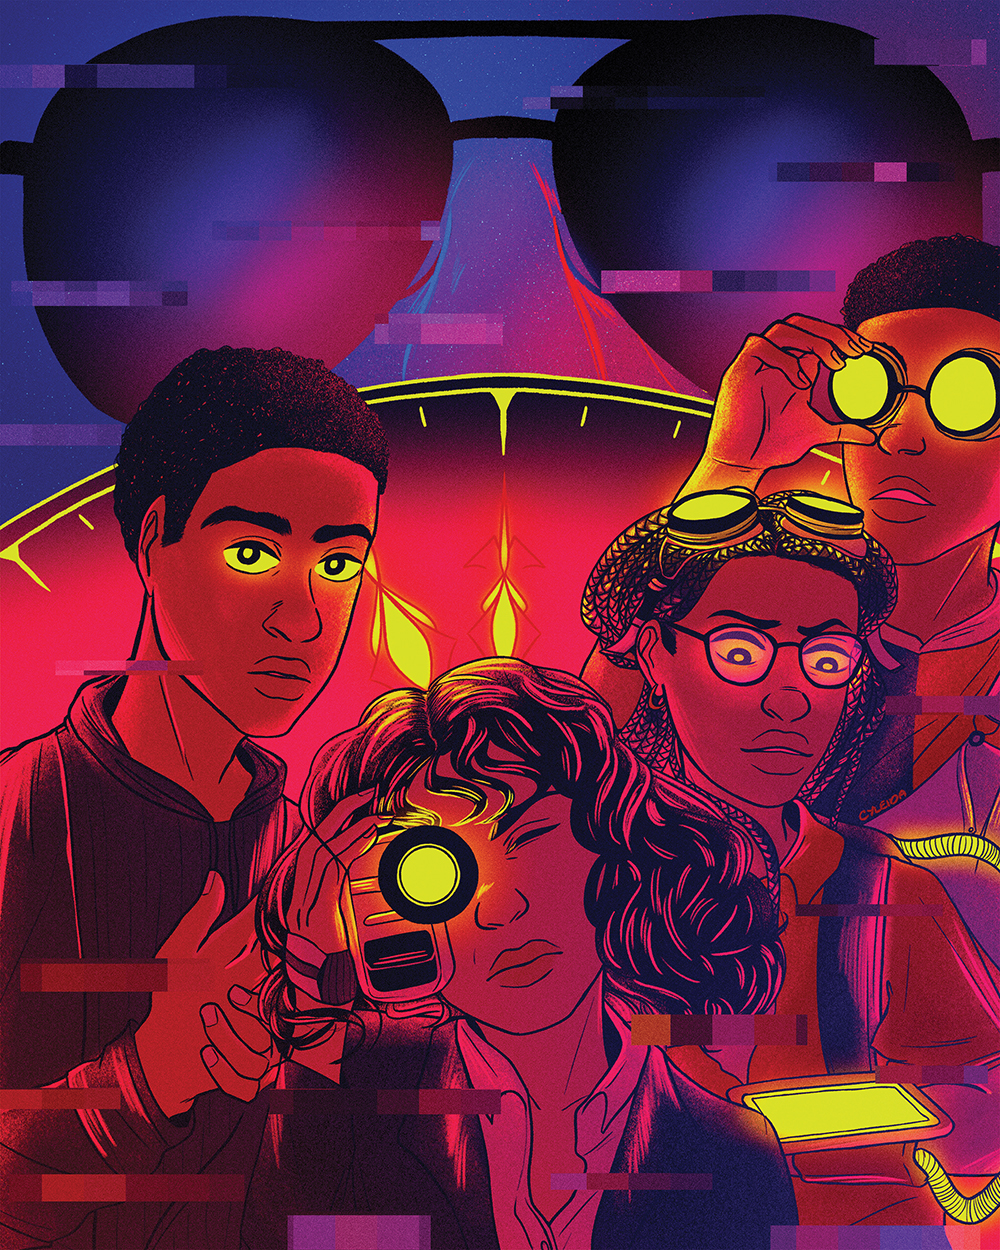 illustration of four fictional Black characters from time travel-related films and TV shows